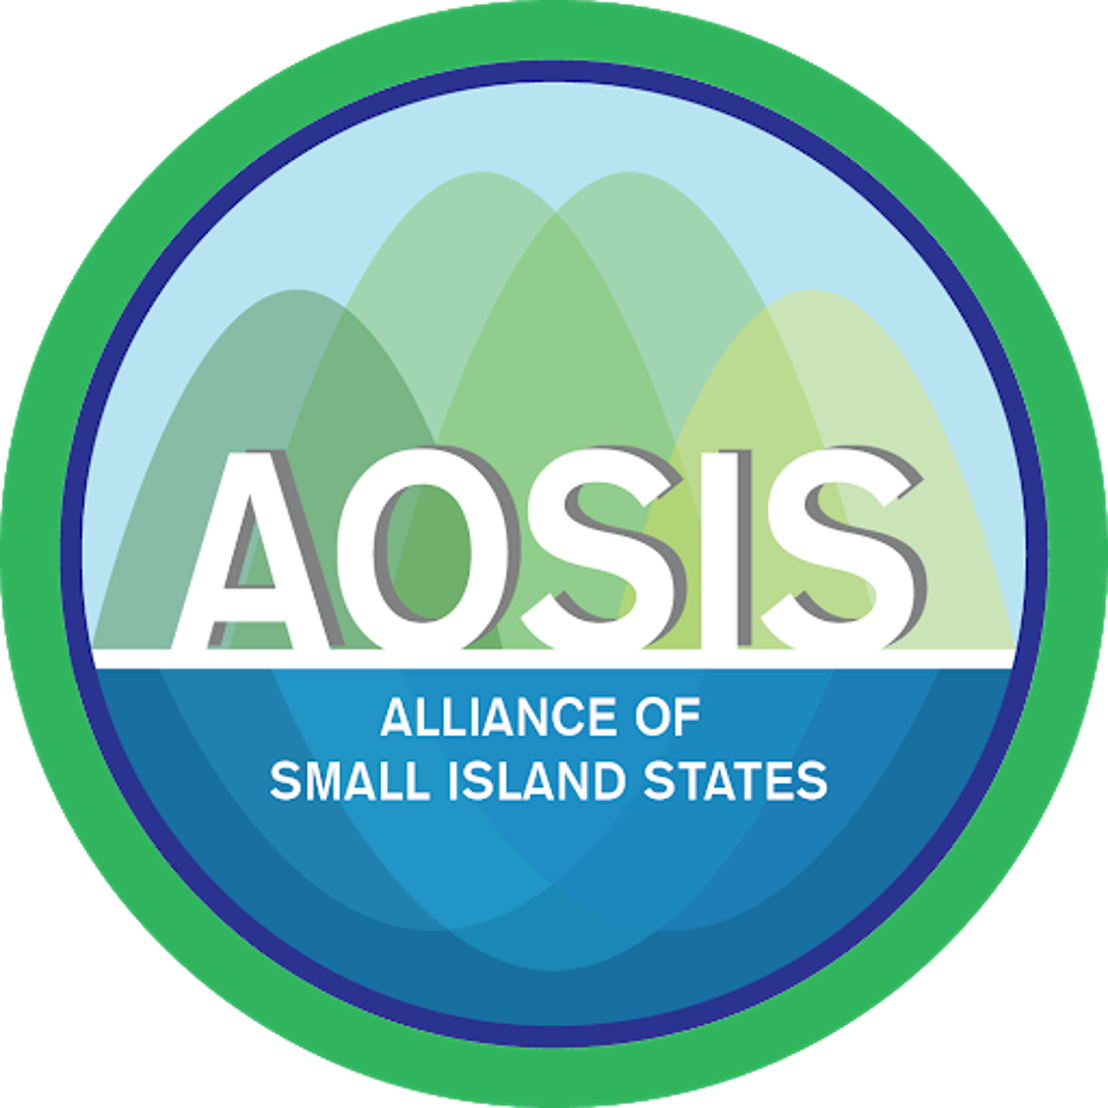 Prime Minister Gaston Browne, as Chair of the Alliance of Small Island States, sends early message on Climate Change to US President Biden